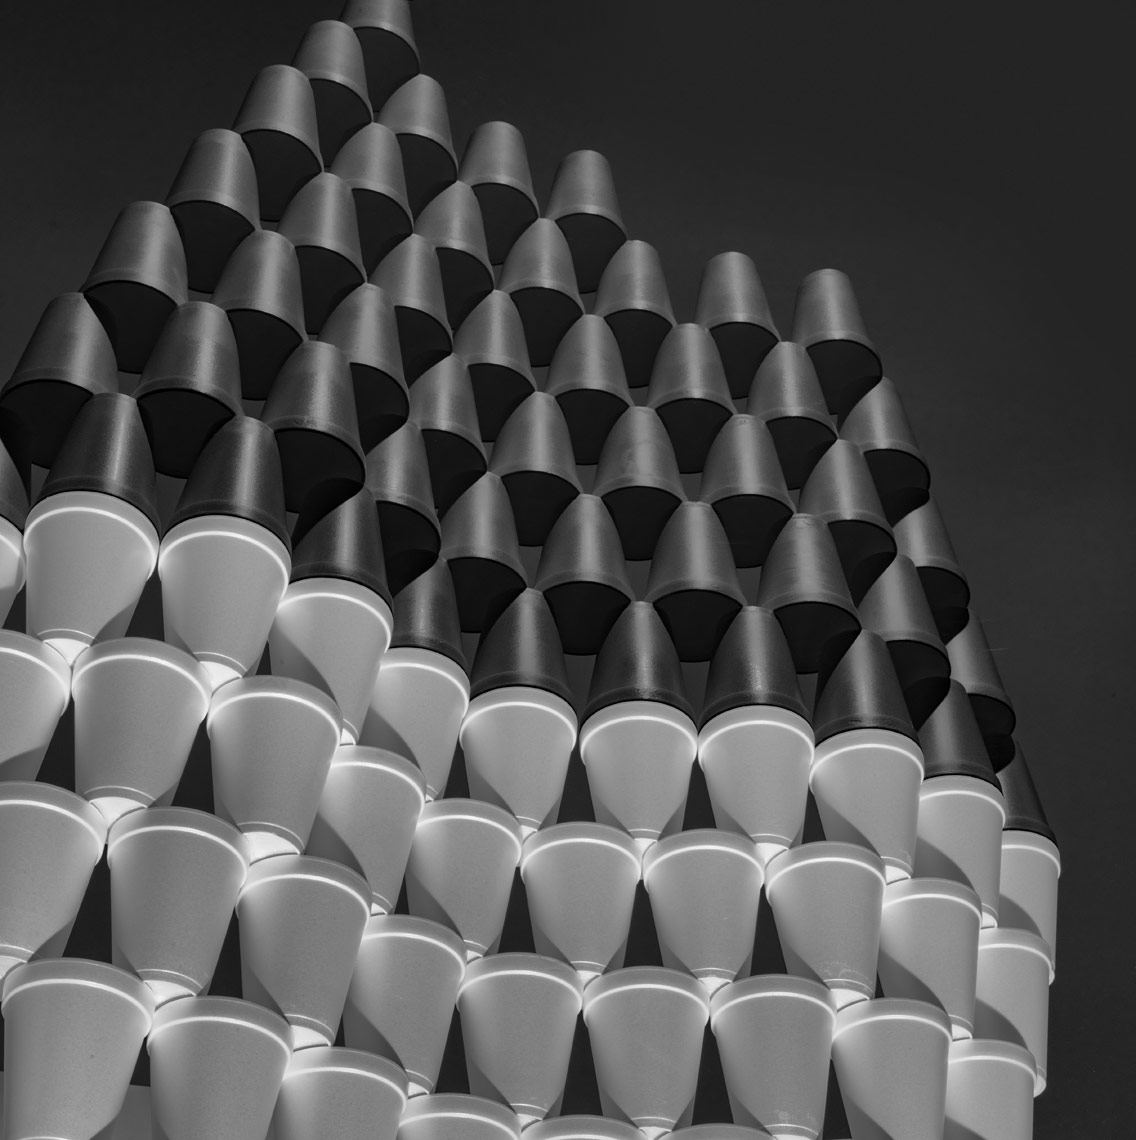 white styrofoam cups in a grid pattern